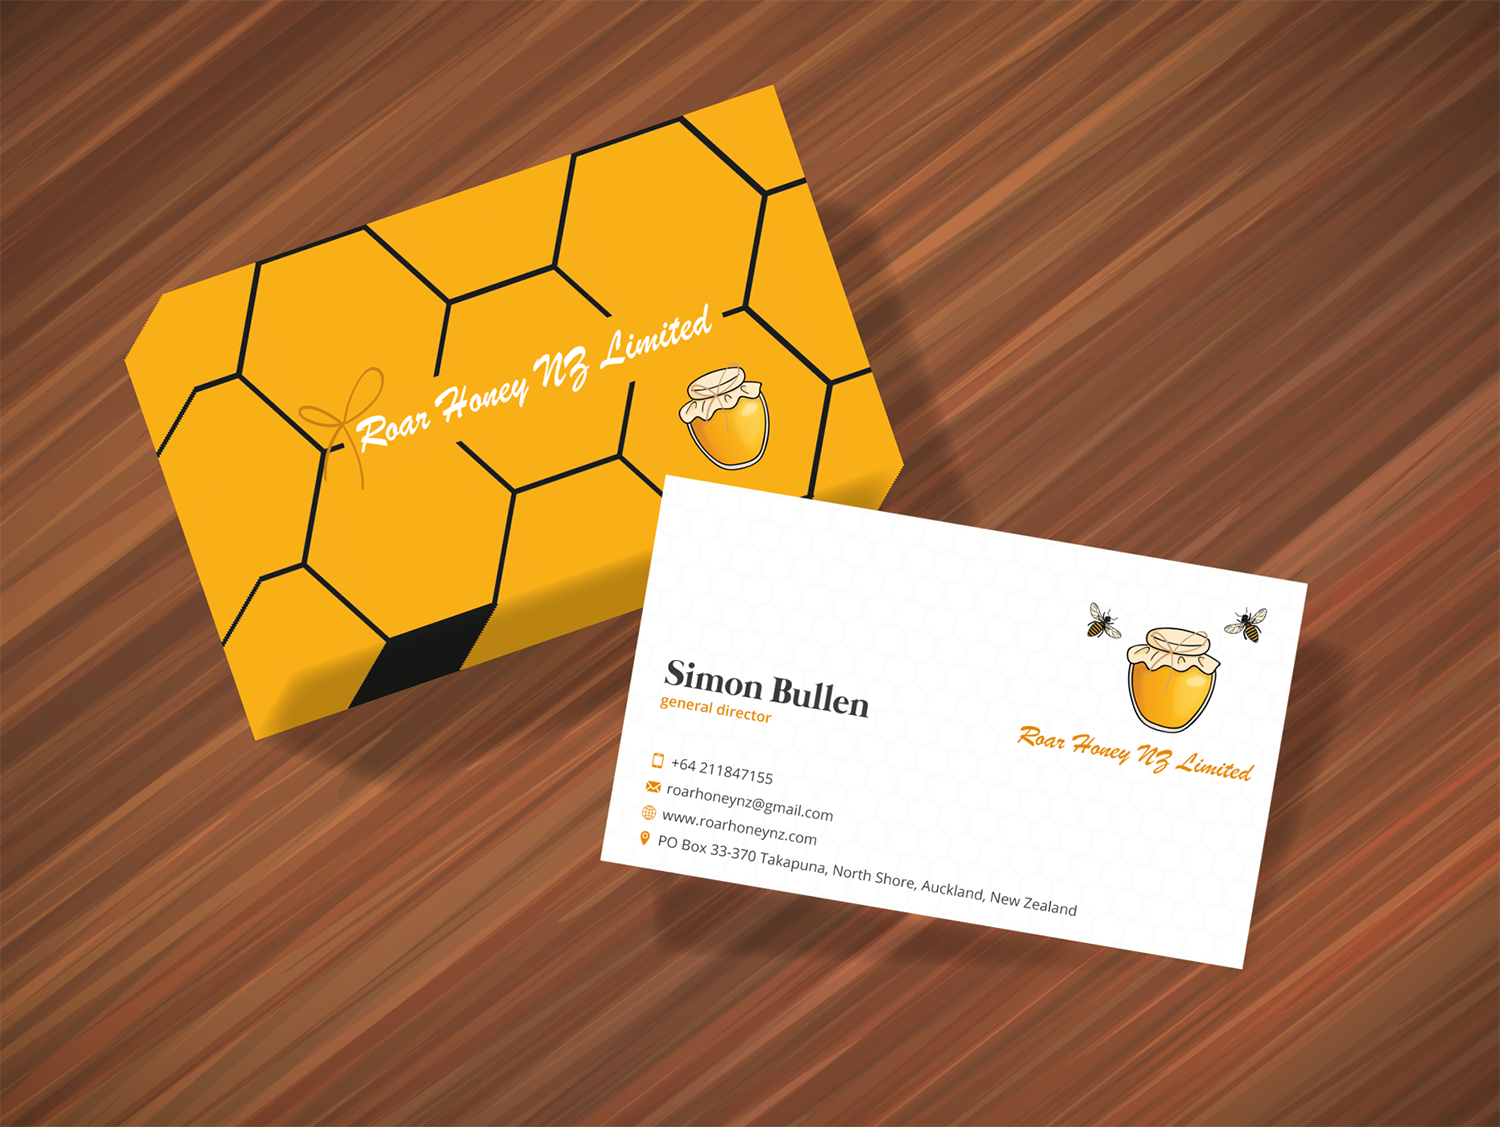 Modern professional wholesale business card design for roar honey business card design by tanama creations for roar honey nz limited design 13850831 reheart Image collections